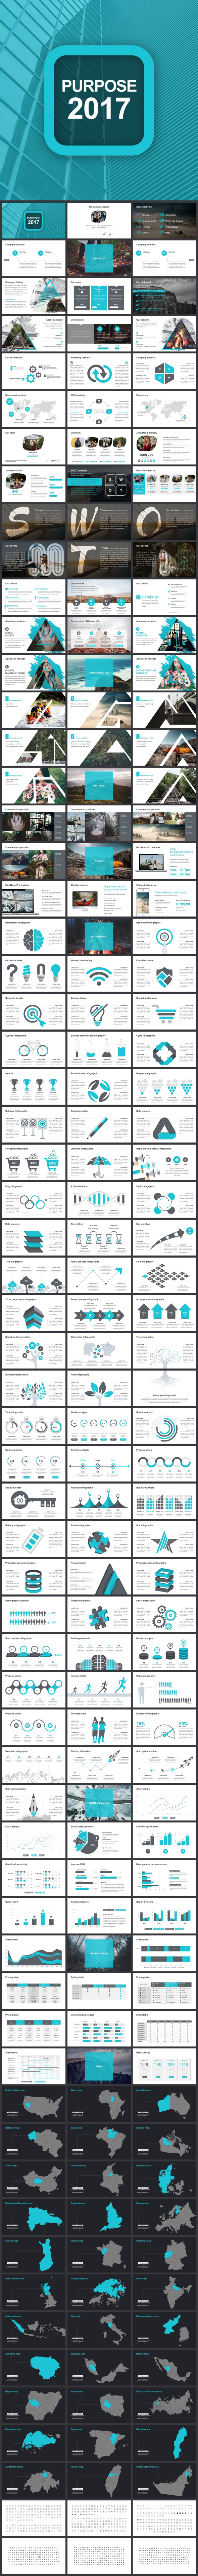 Purpose 2017 Powerpoint Template - Business PowerPoint Templates